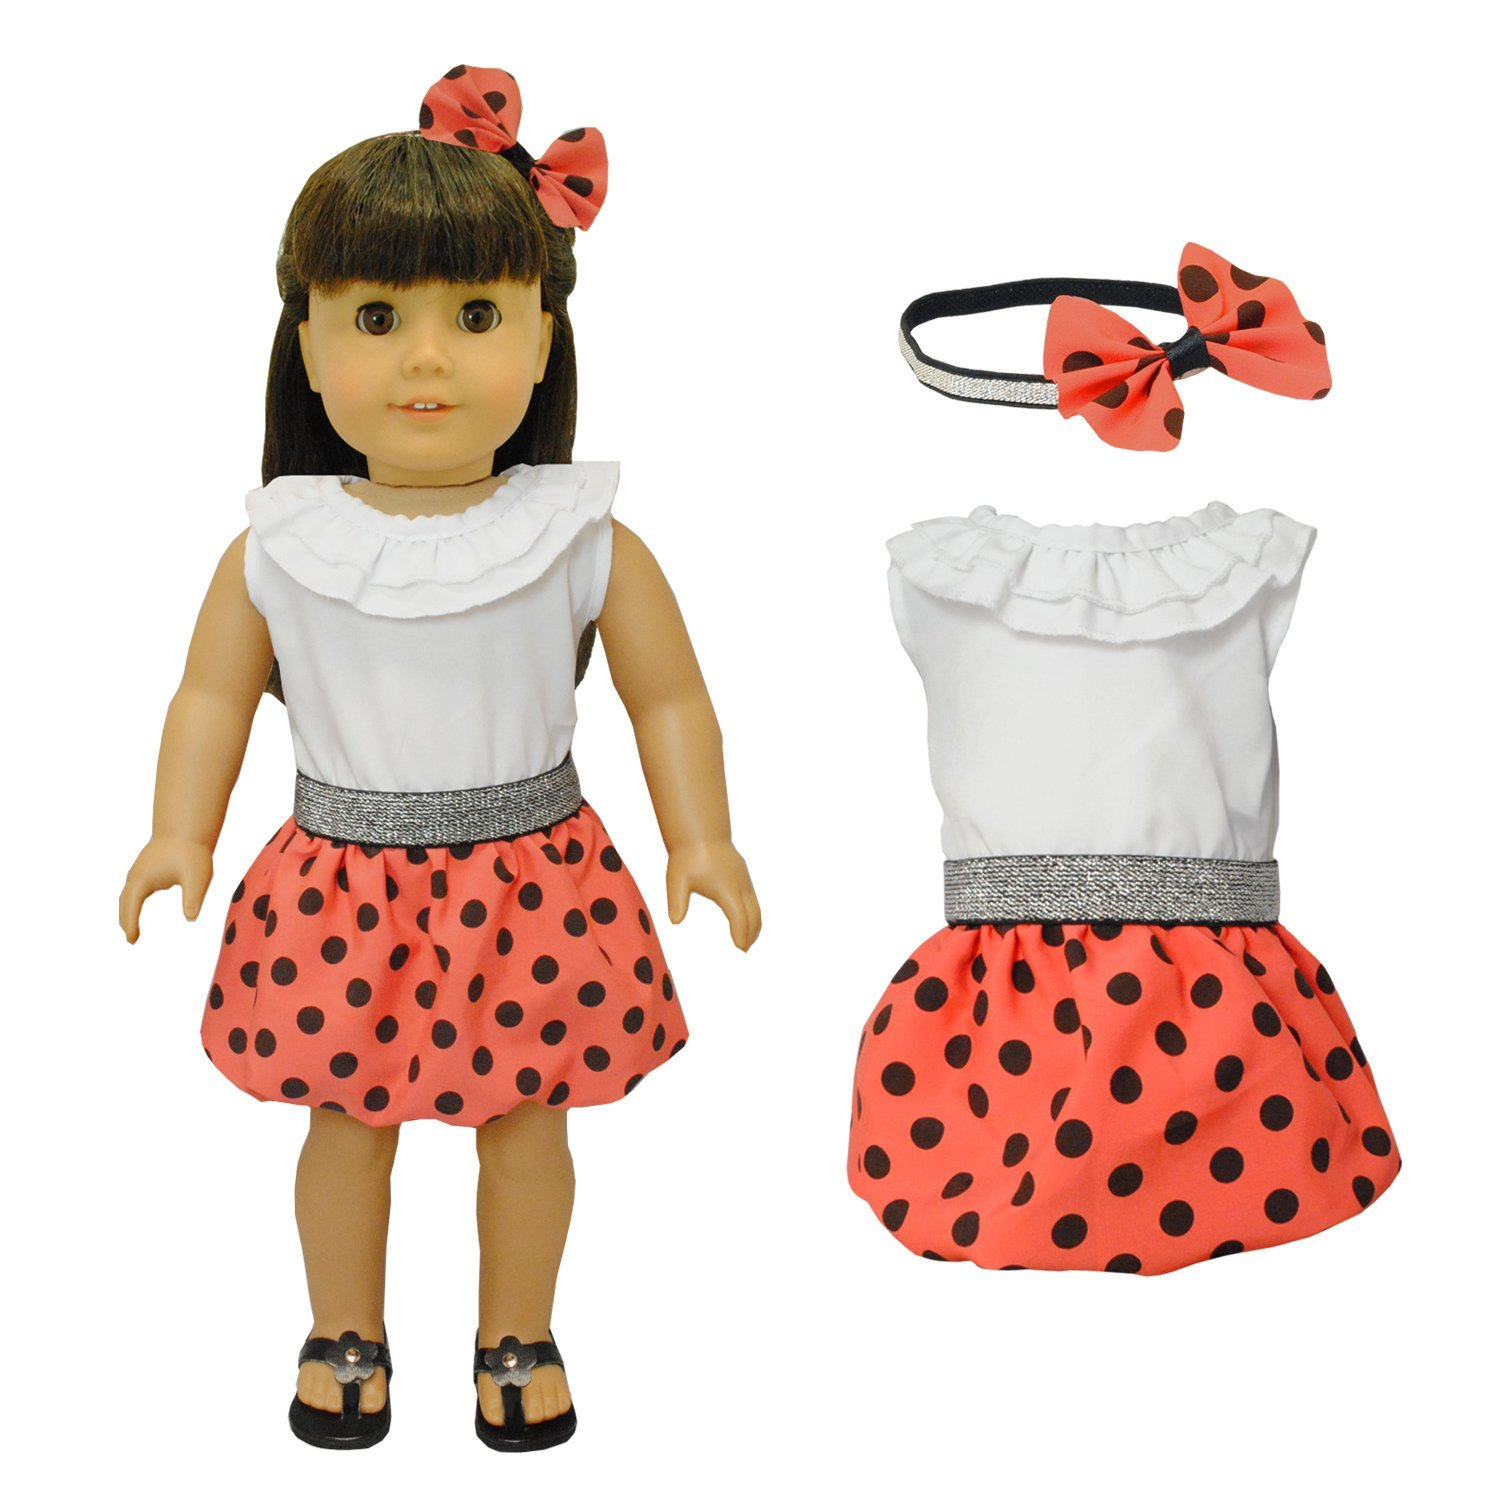 Buy Doll Clothes White Polka Dots Dress with Head Band Set Fits